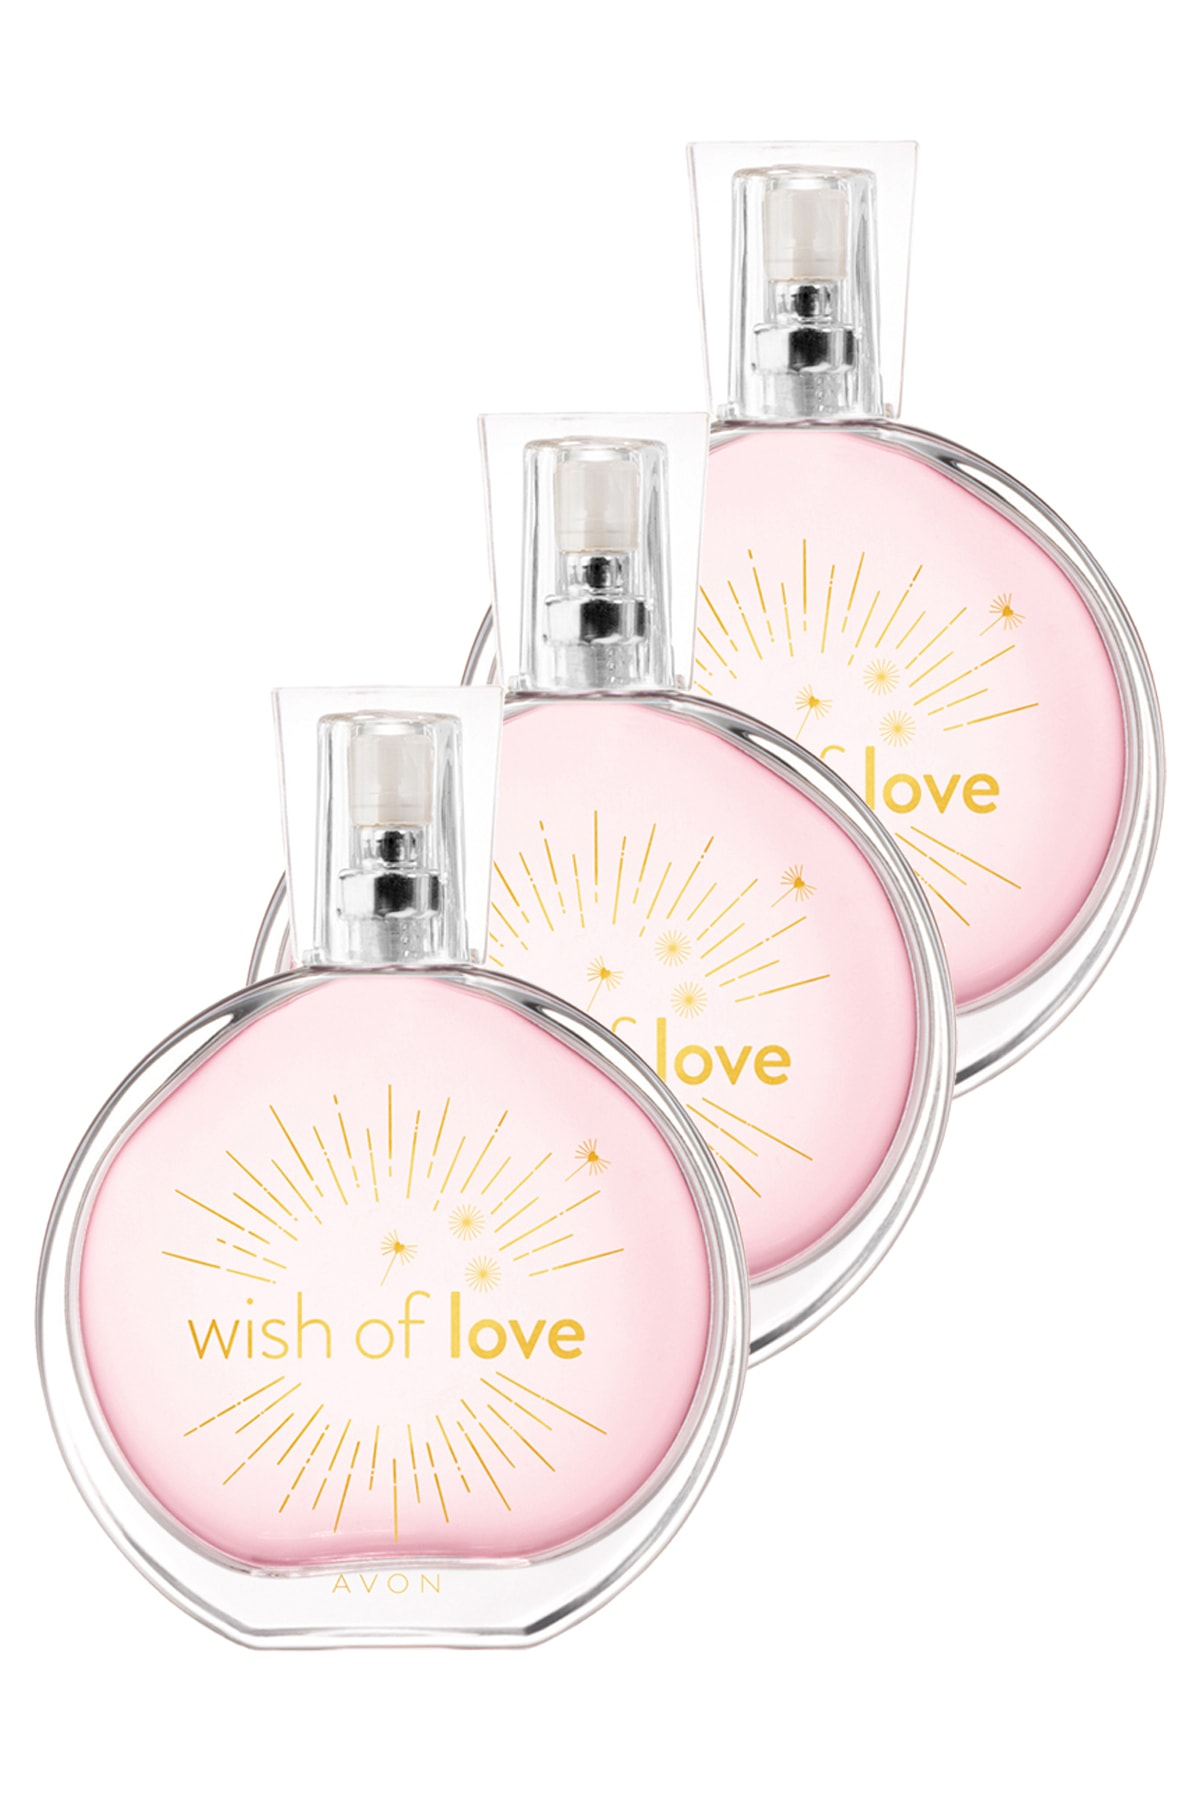 Avon Wish Of Love Kadın Parfüm Edt 50 ml 3'lü Set 5050000103381 0